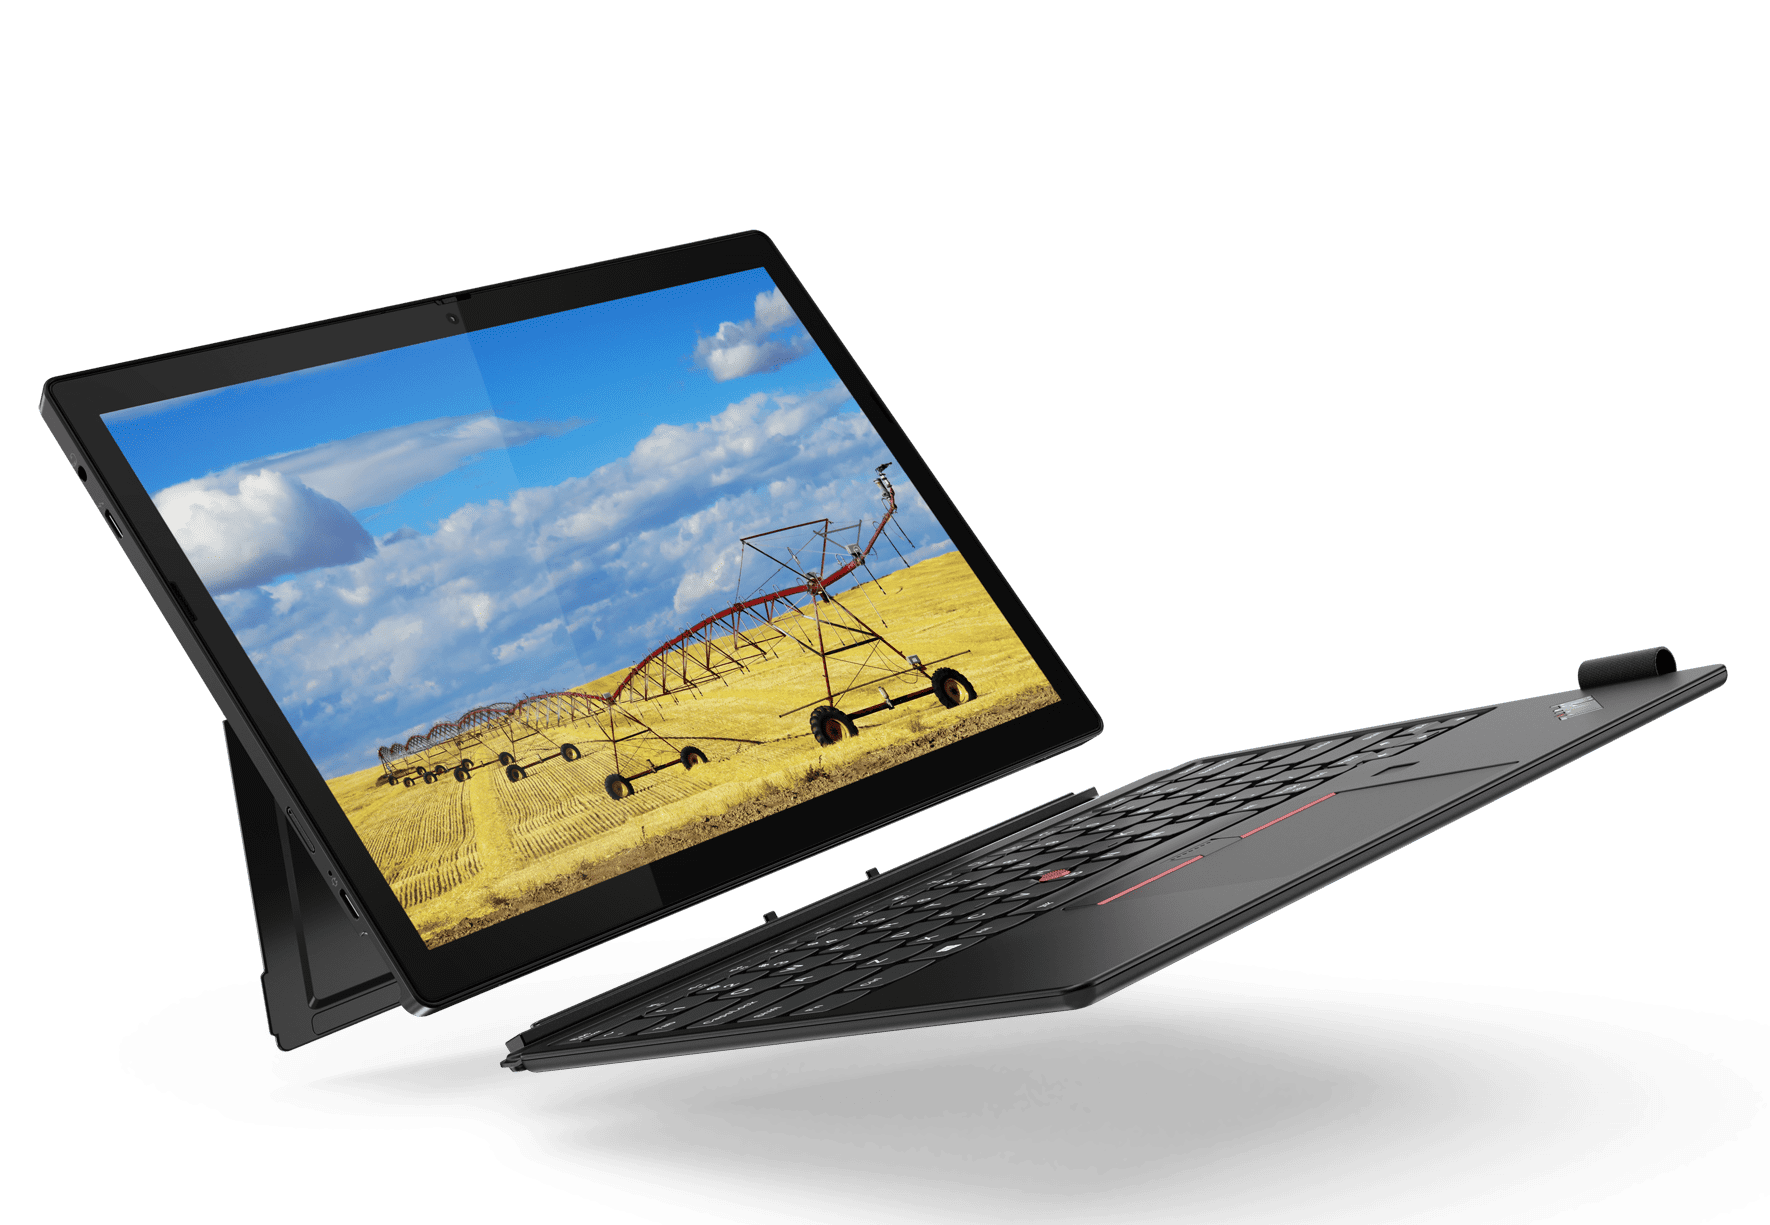 ThinkPad X12 Detachable with kickstand and keyboard